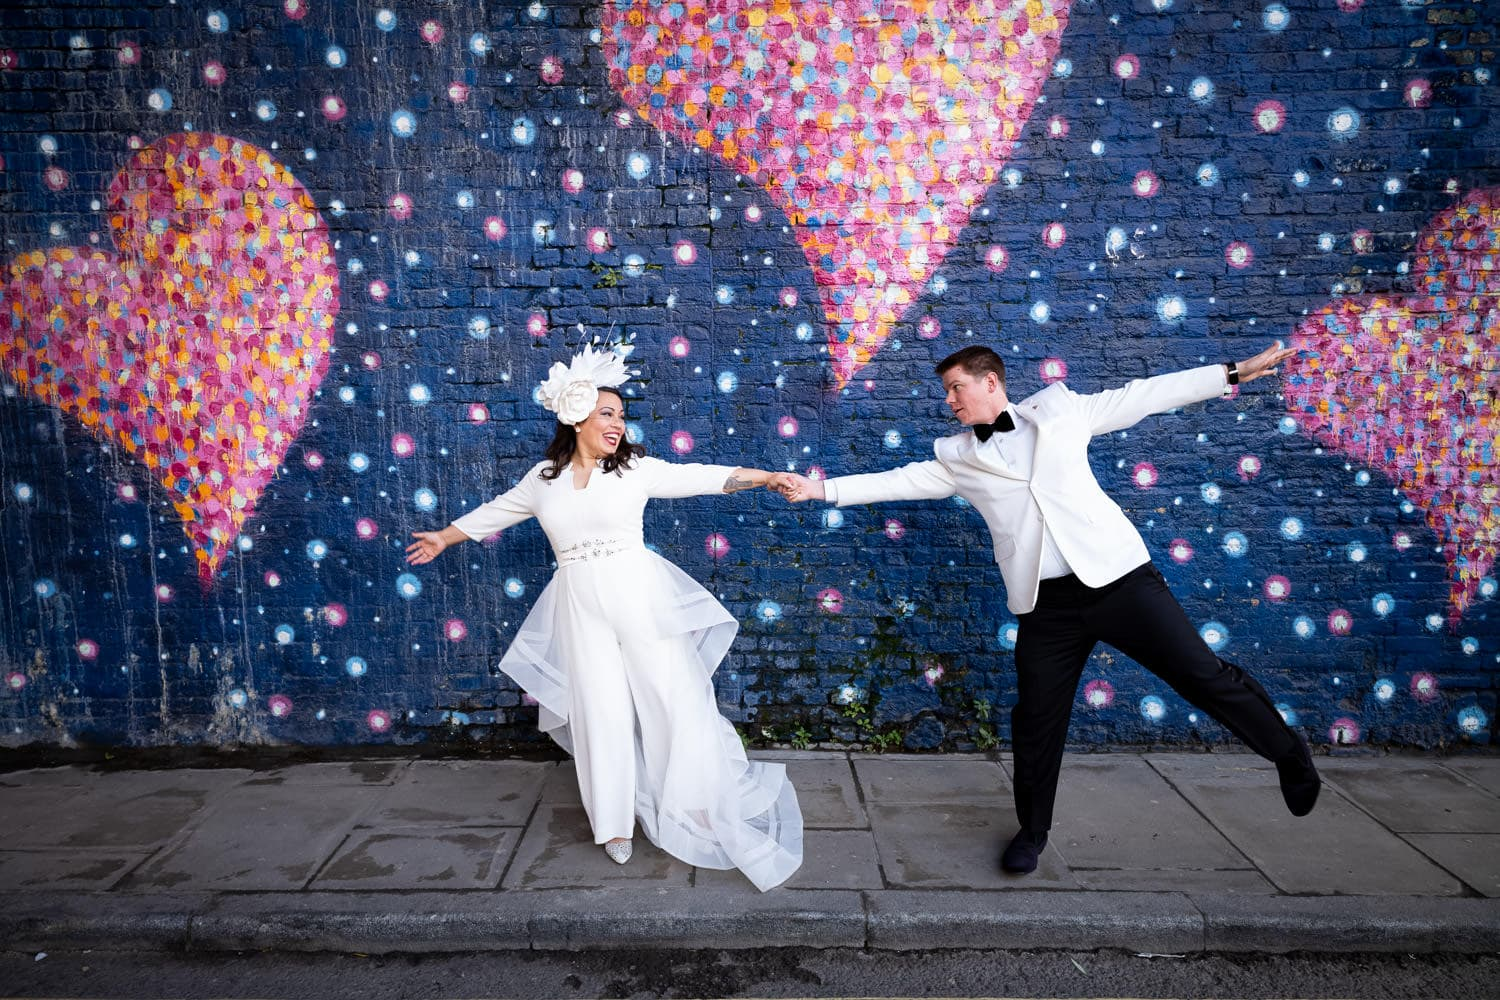 Douglas Fry 2020 Best wedding photographs - London couple during elopement from US